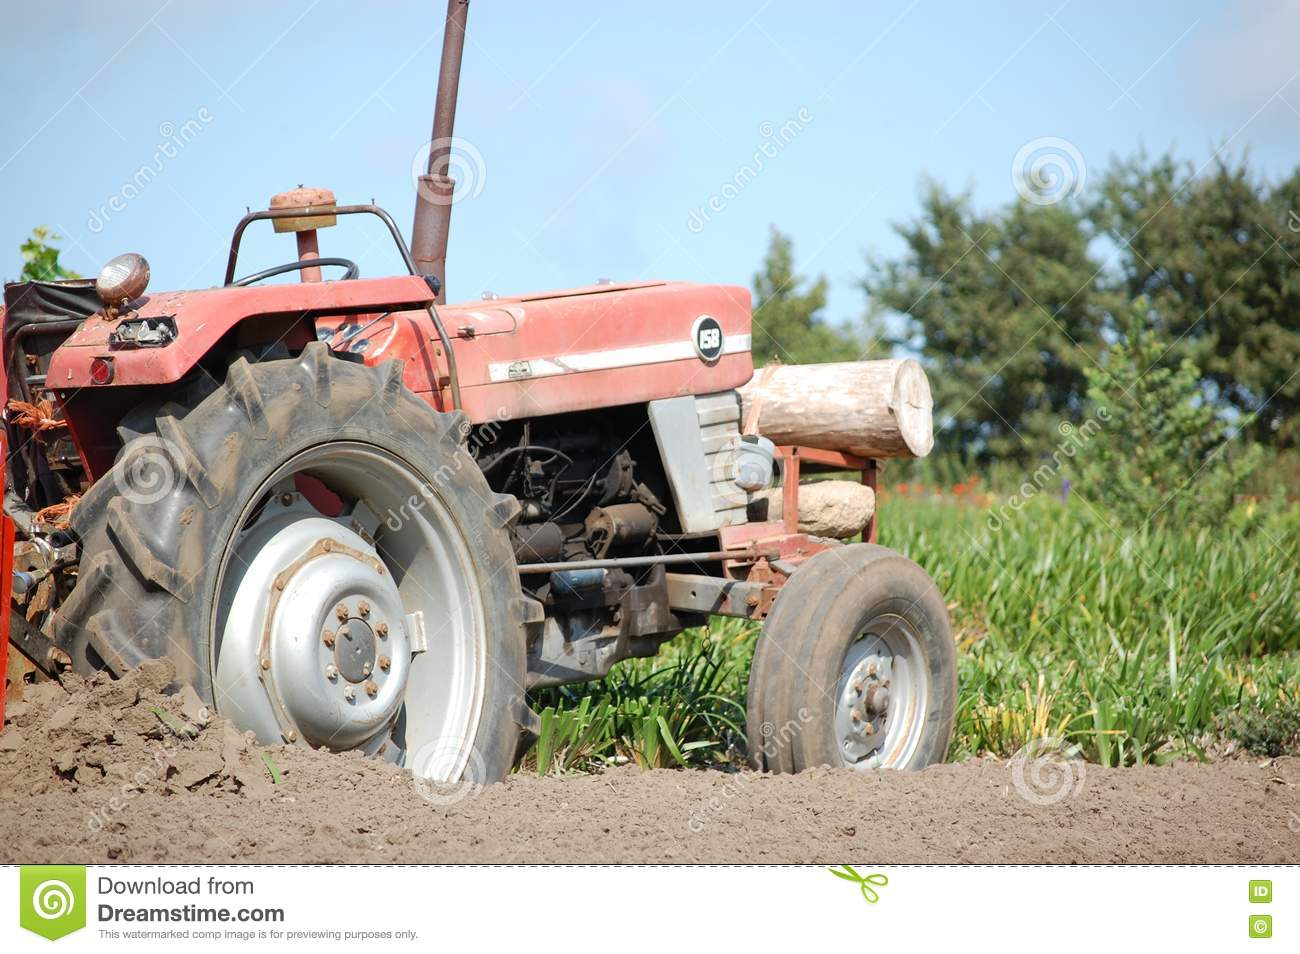 Old Tractor at work